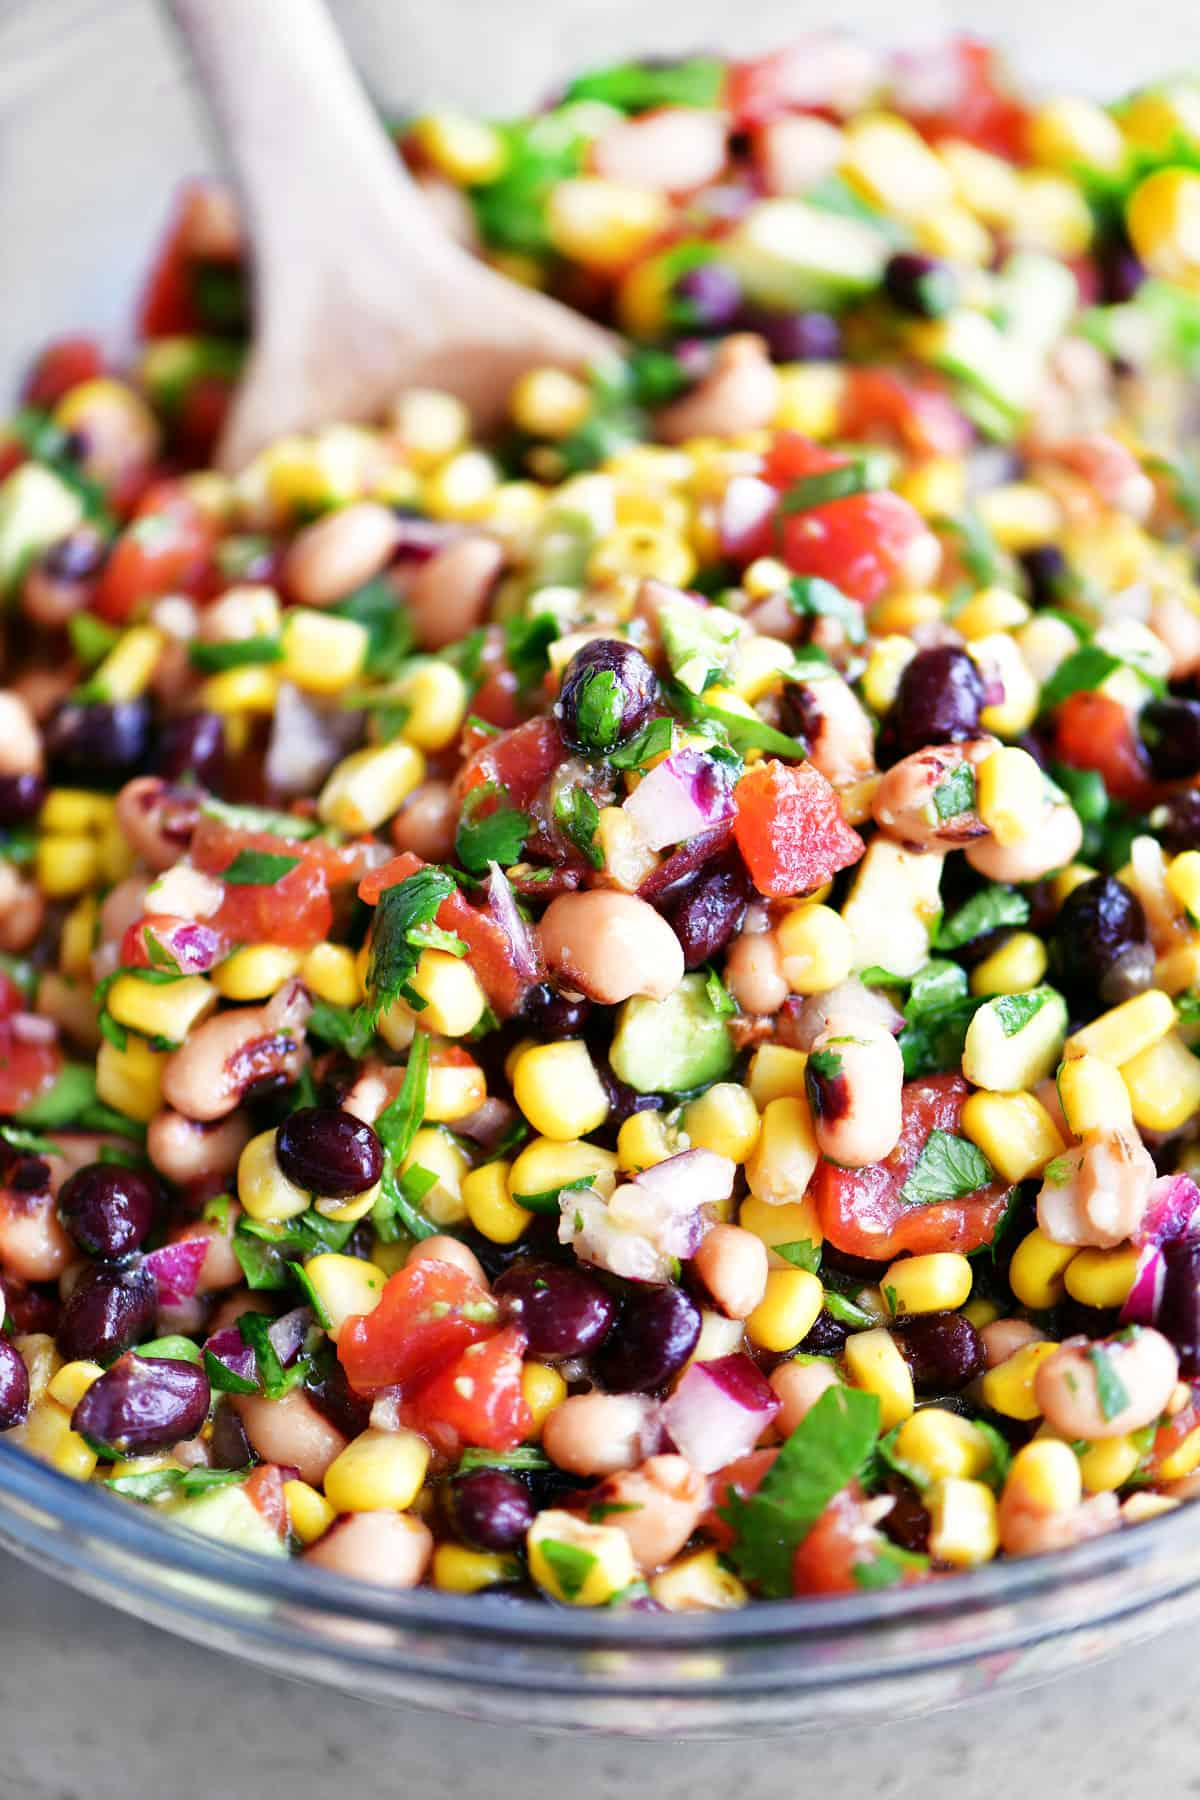 cowboy caviar in bowl with a wooden spoon